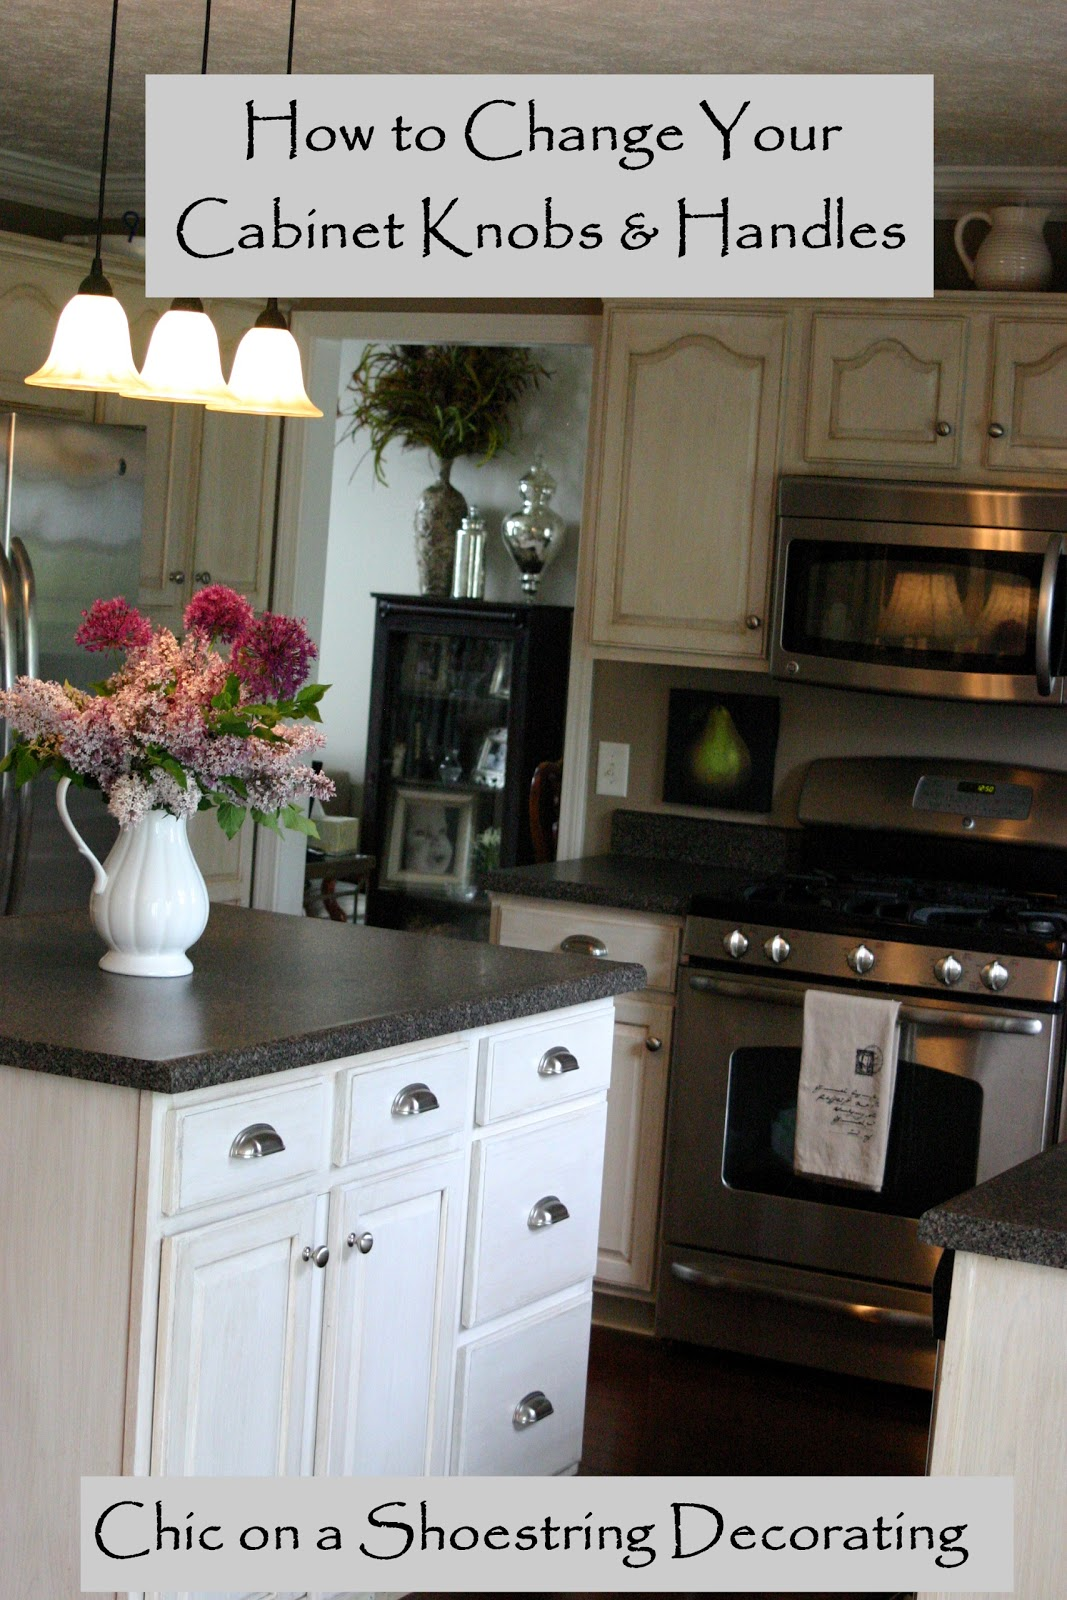 Chic on a shoestring decorating how to change your for Kitchen and bathroom cabinet hardware